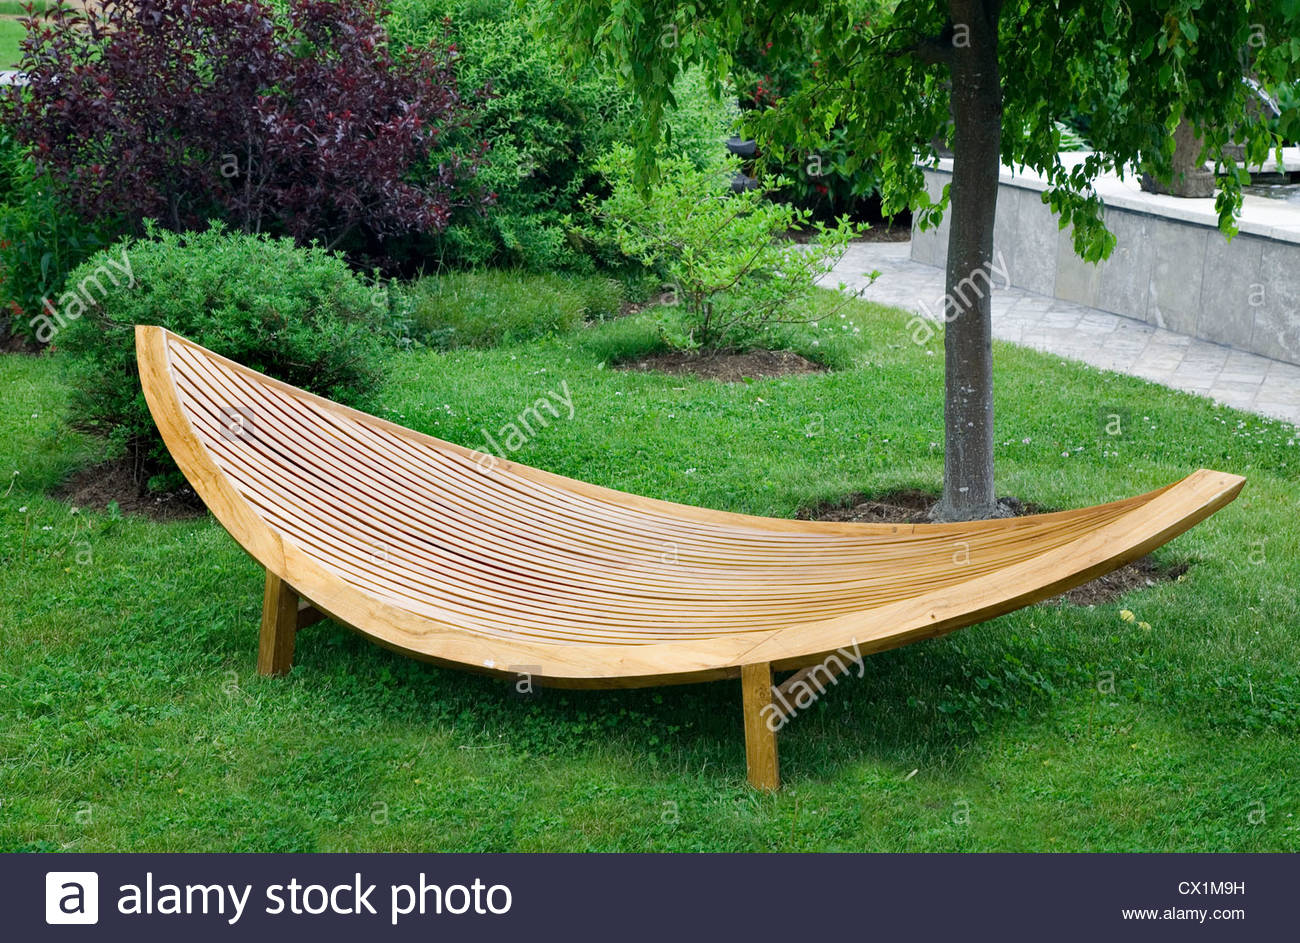 Wooden garden furniture  19